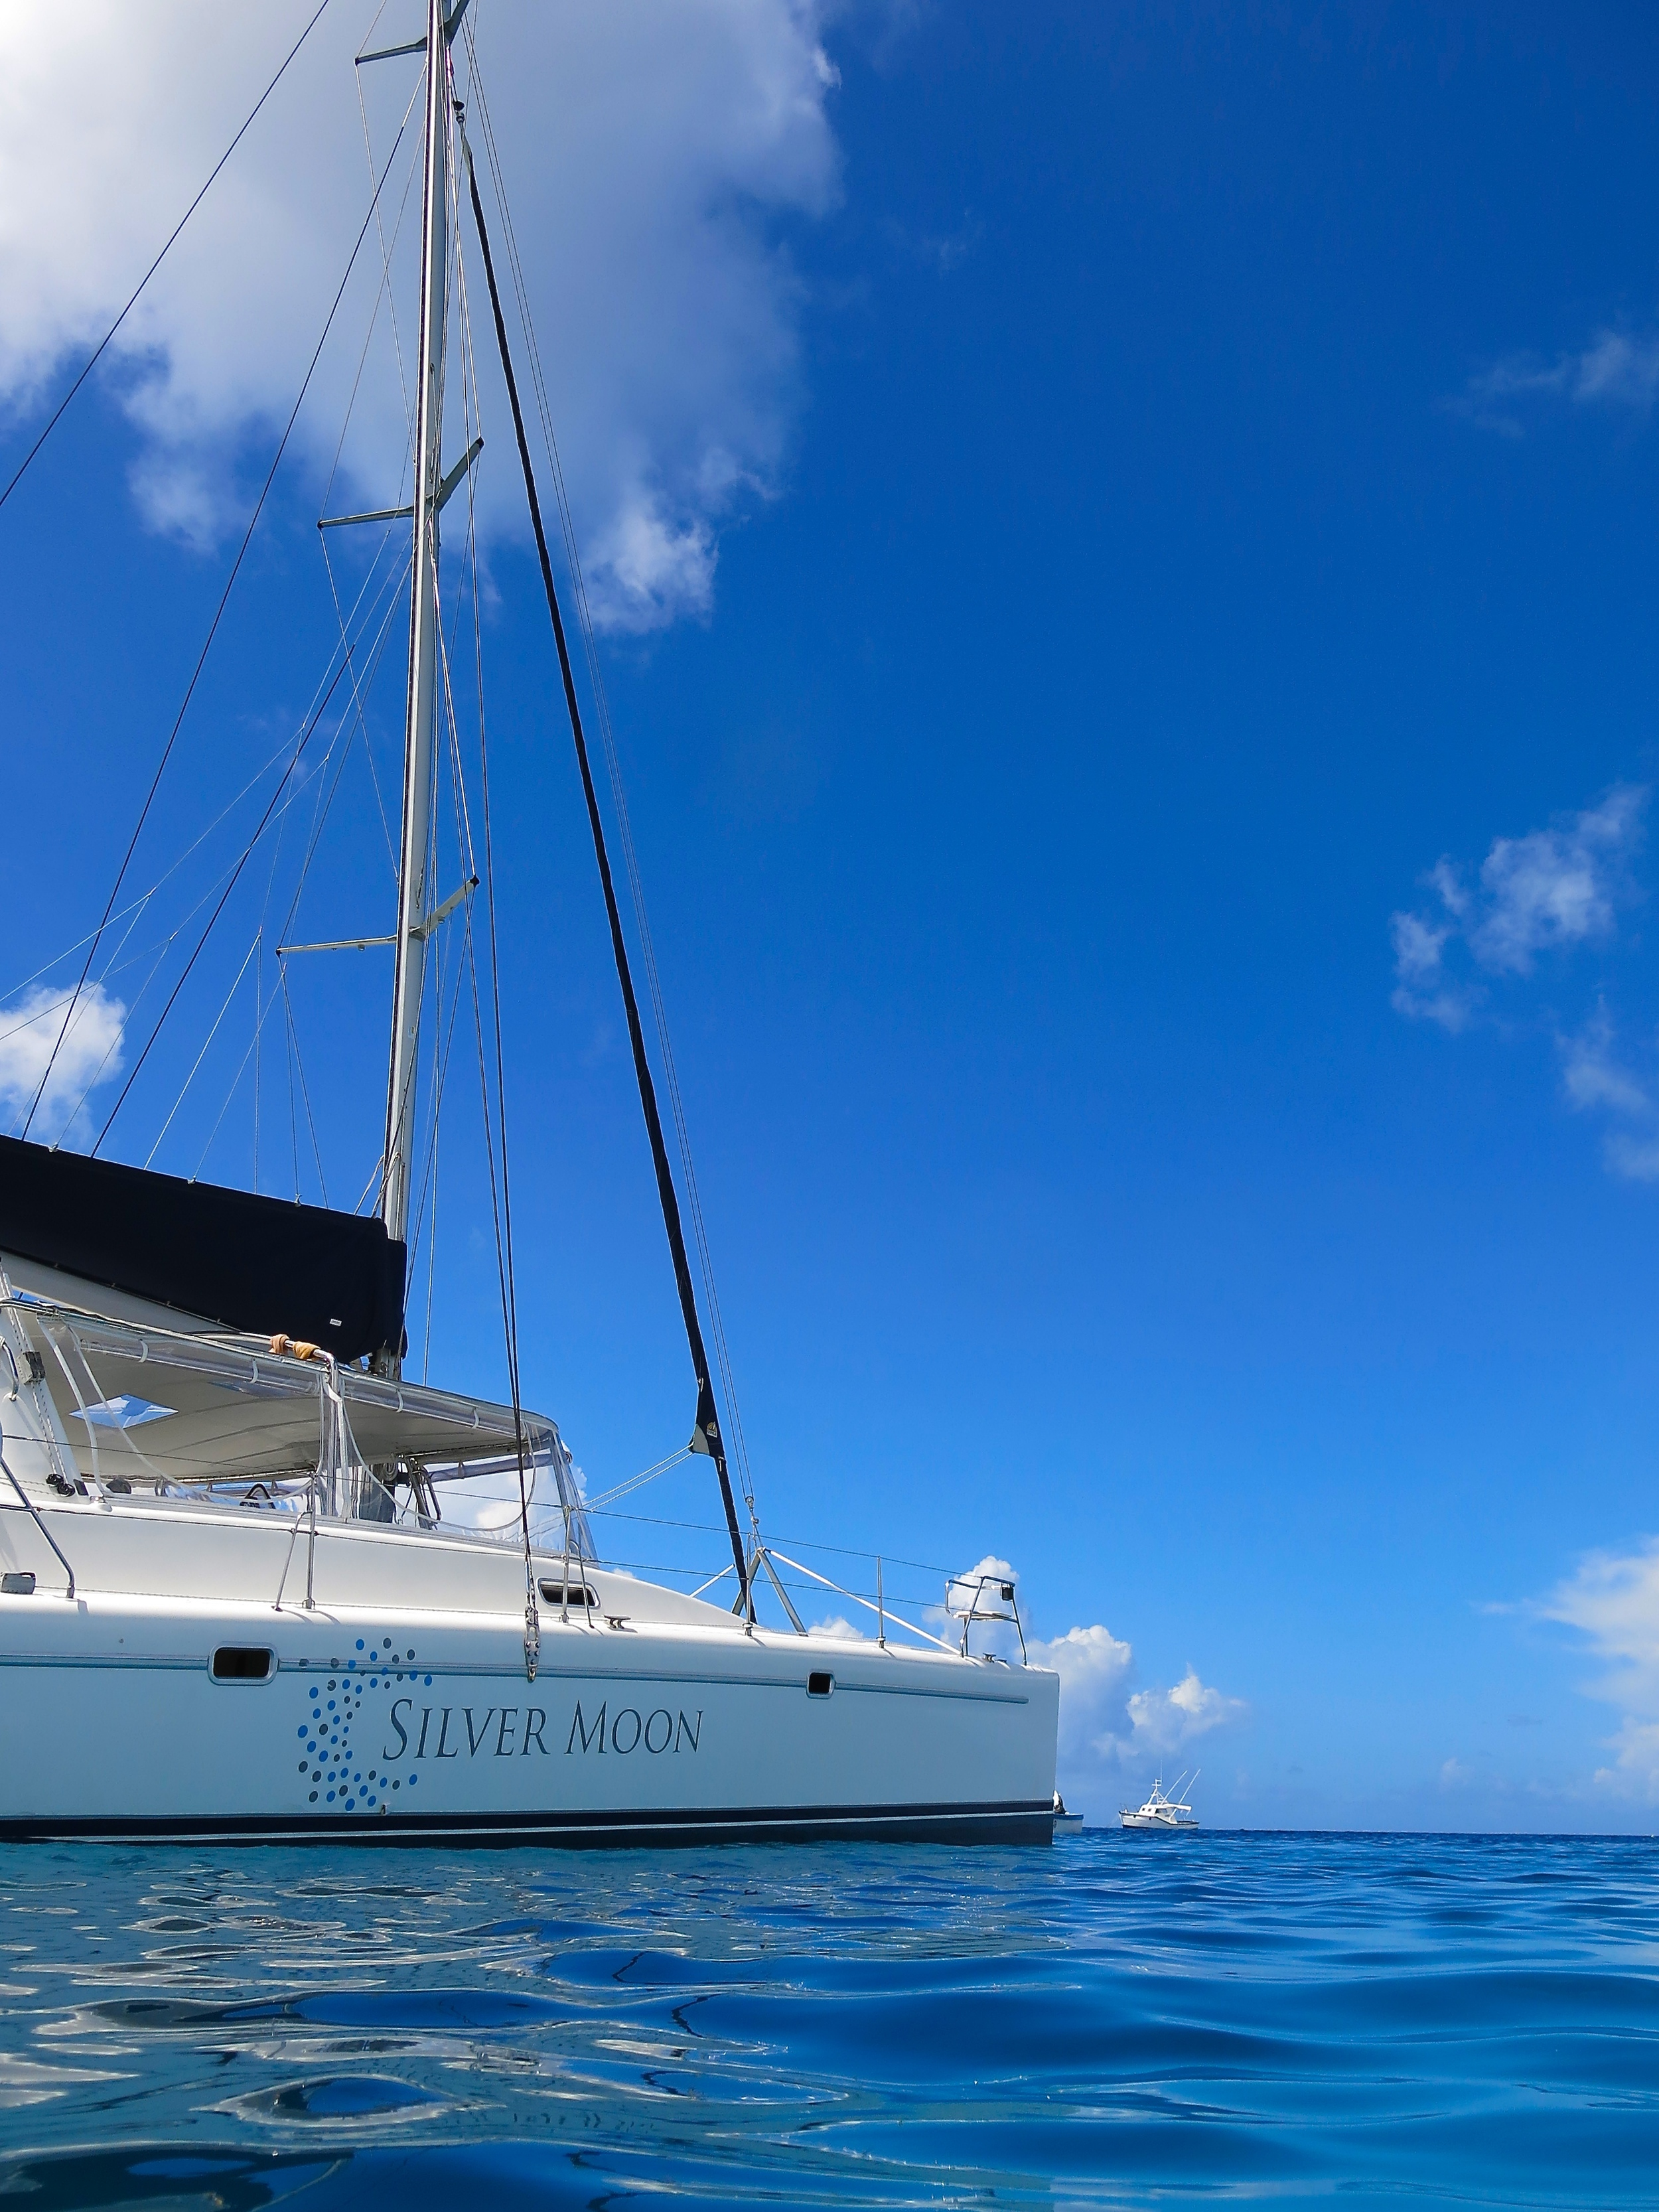 The highlight of our trip was the day we chartered a private catamaran from  Silver Moon . Their staff was amazing, fun, and had a great sense of humor. They served us a fantastic lunch and the drinks were flowing throughout the day.